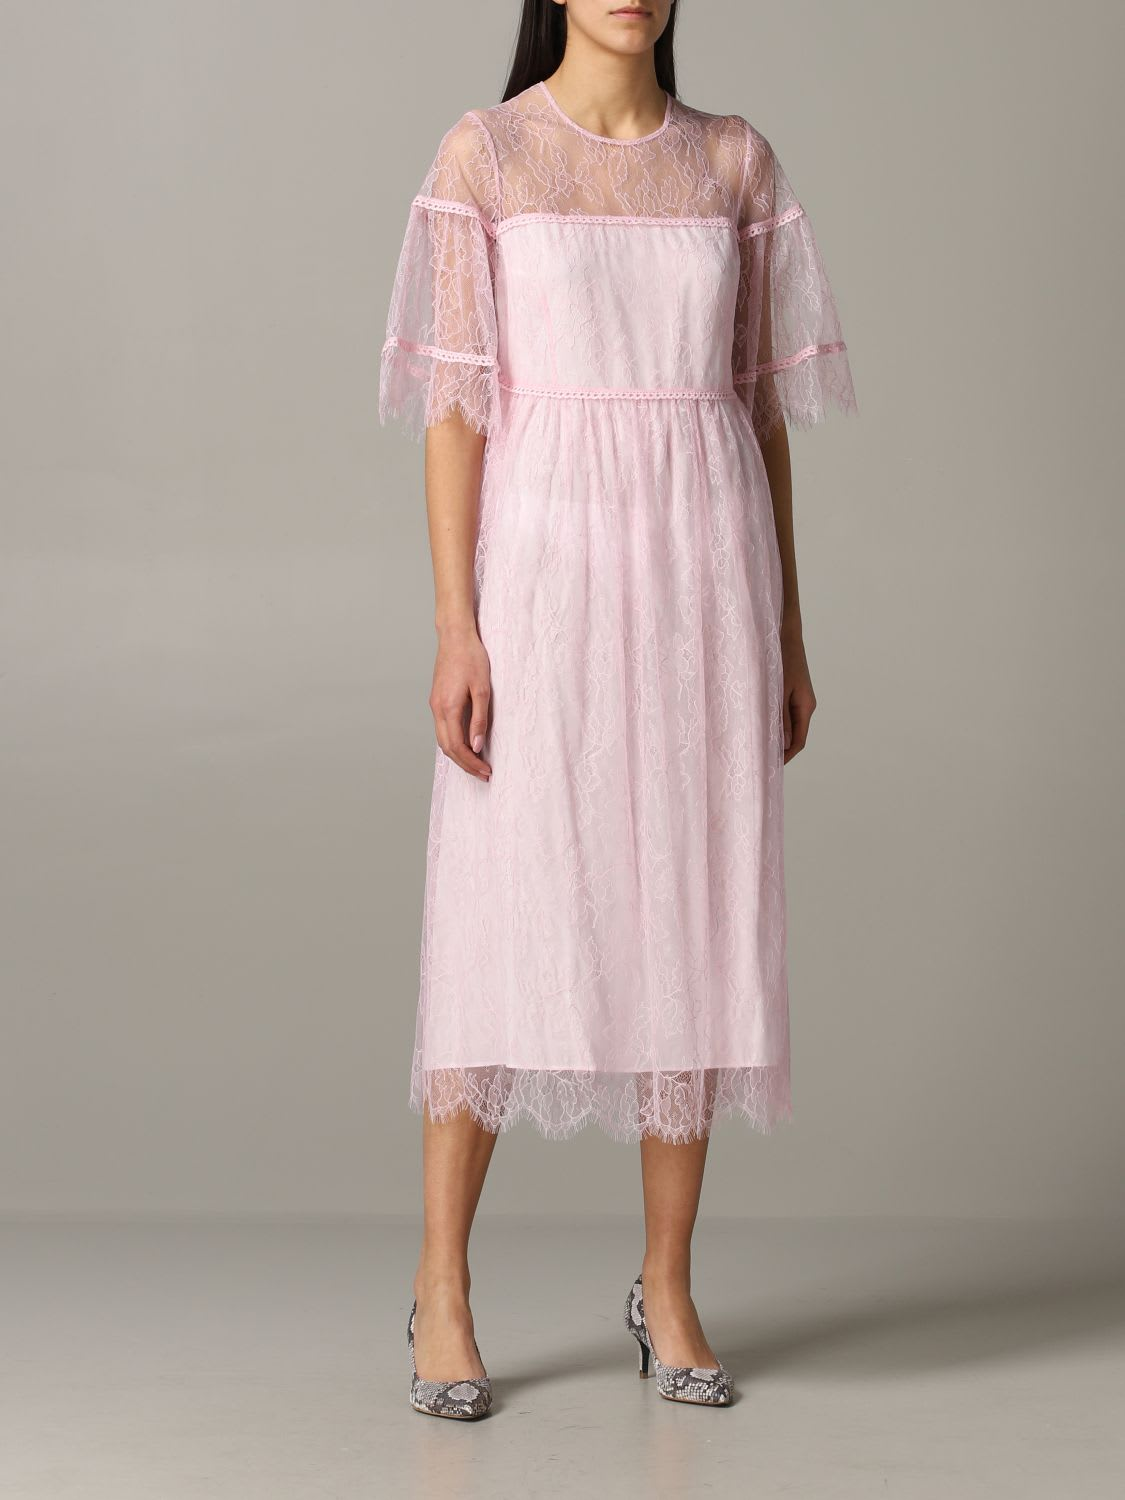 Buy Be Blumarine Dress Blumarine Lace Dress online, shop Be Blumarine with free shipping